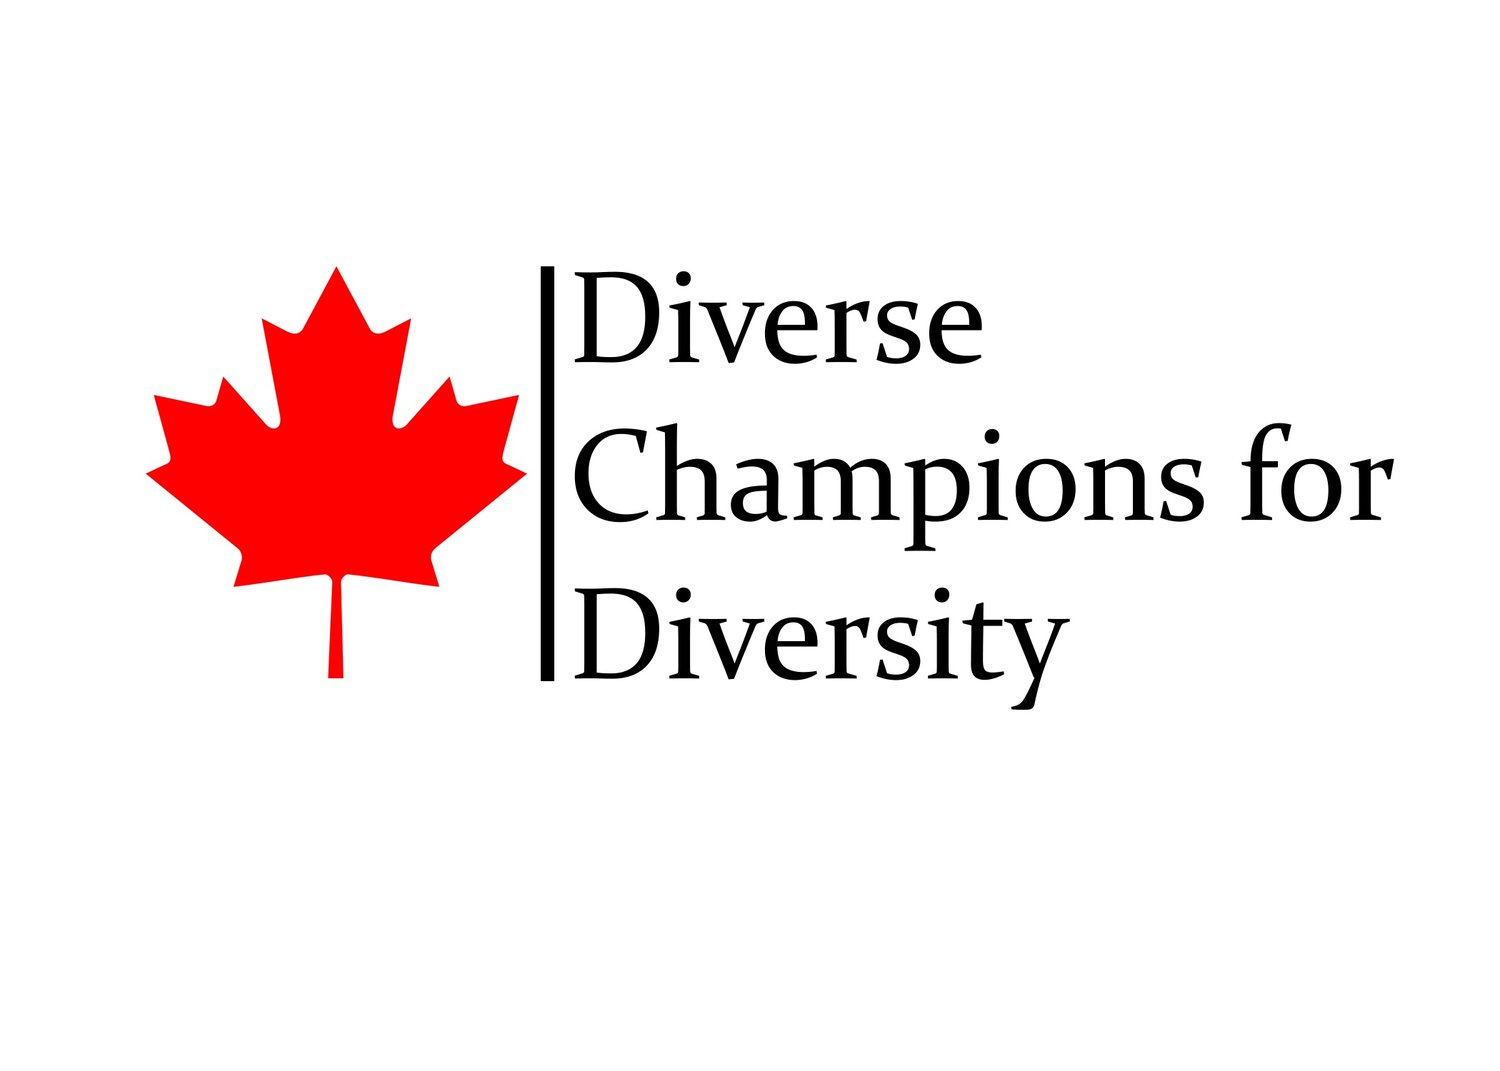 Diverse Champions for Diversity